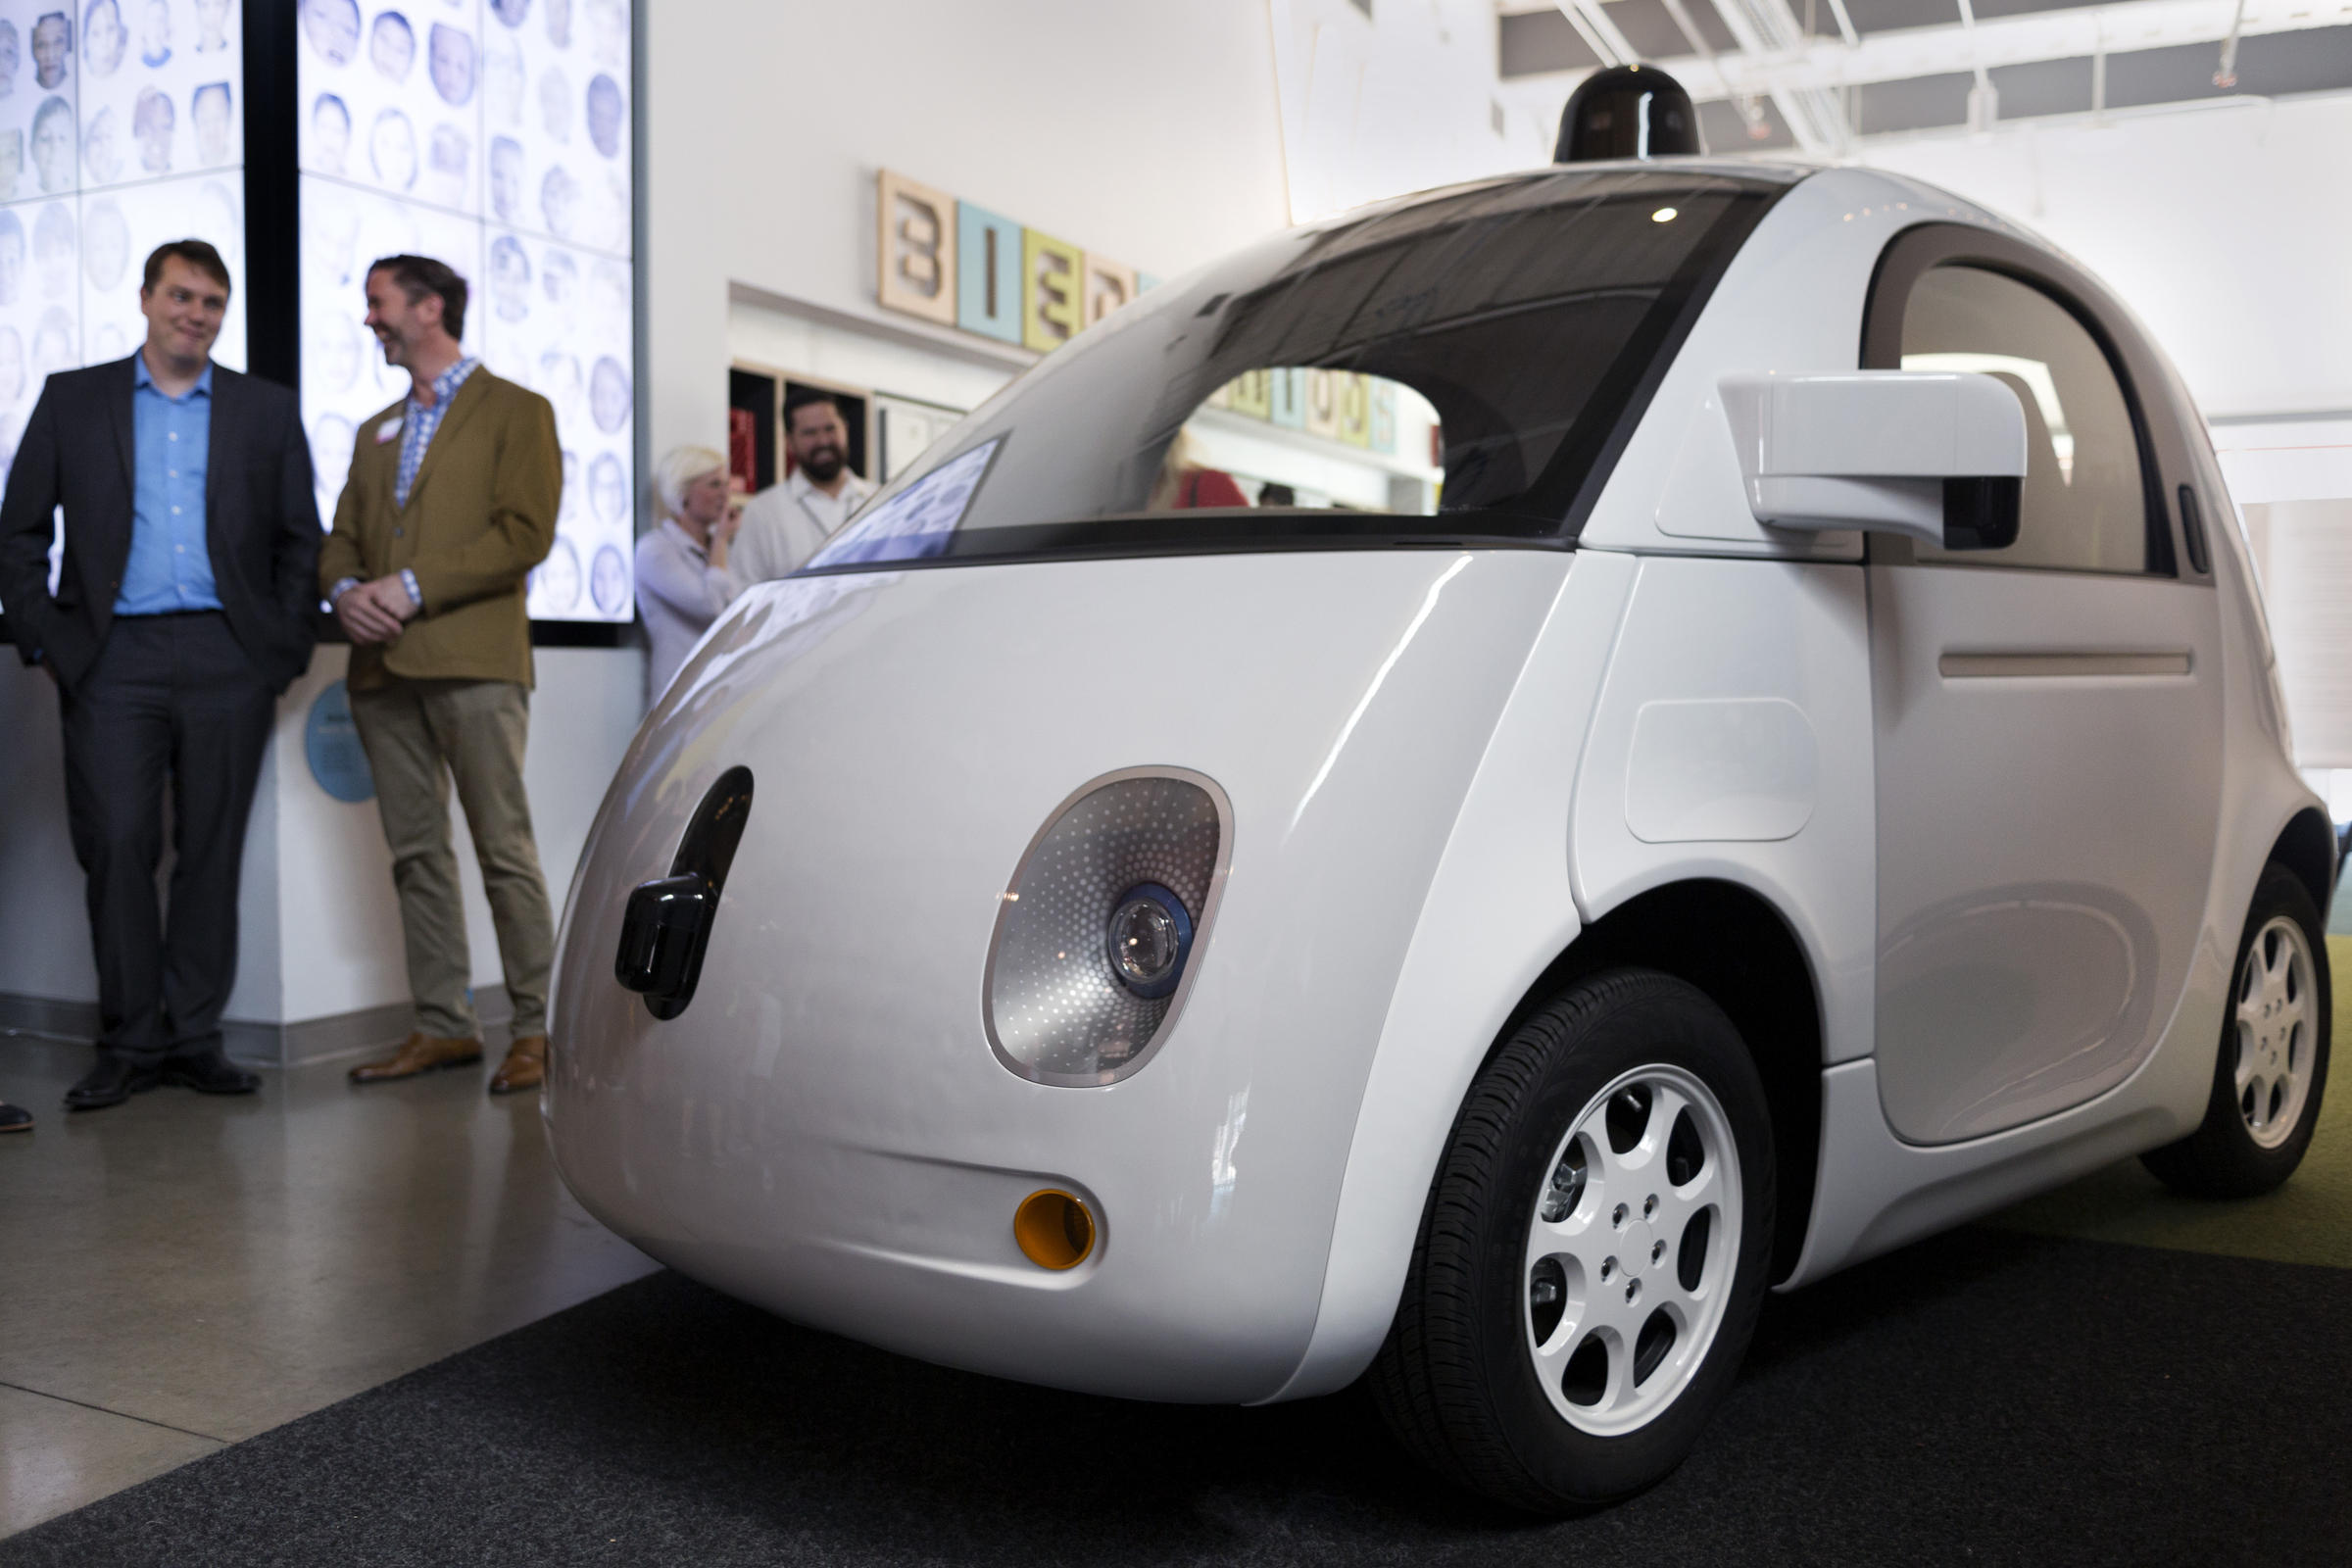 One Of Google S Self Driving Cars Which Was Unveiled Last Week At An Event The Thinkery